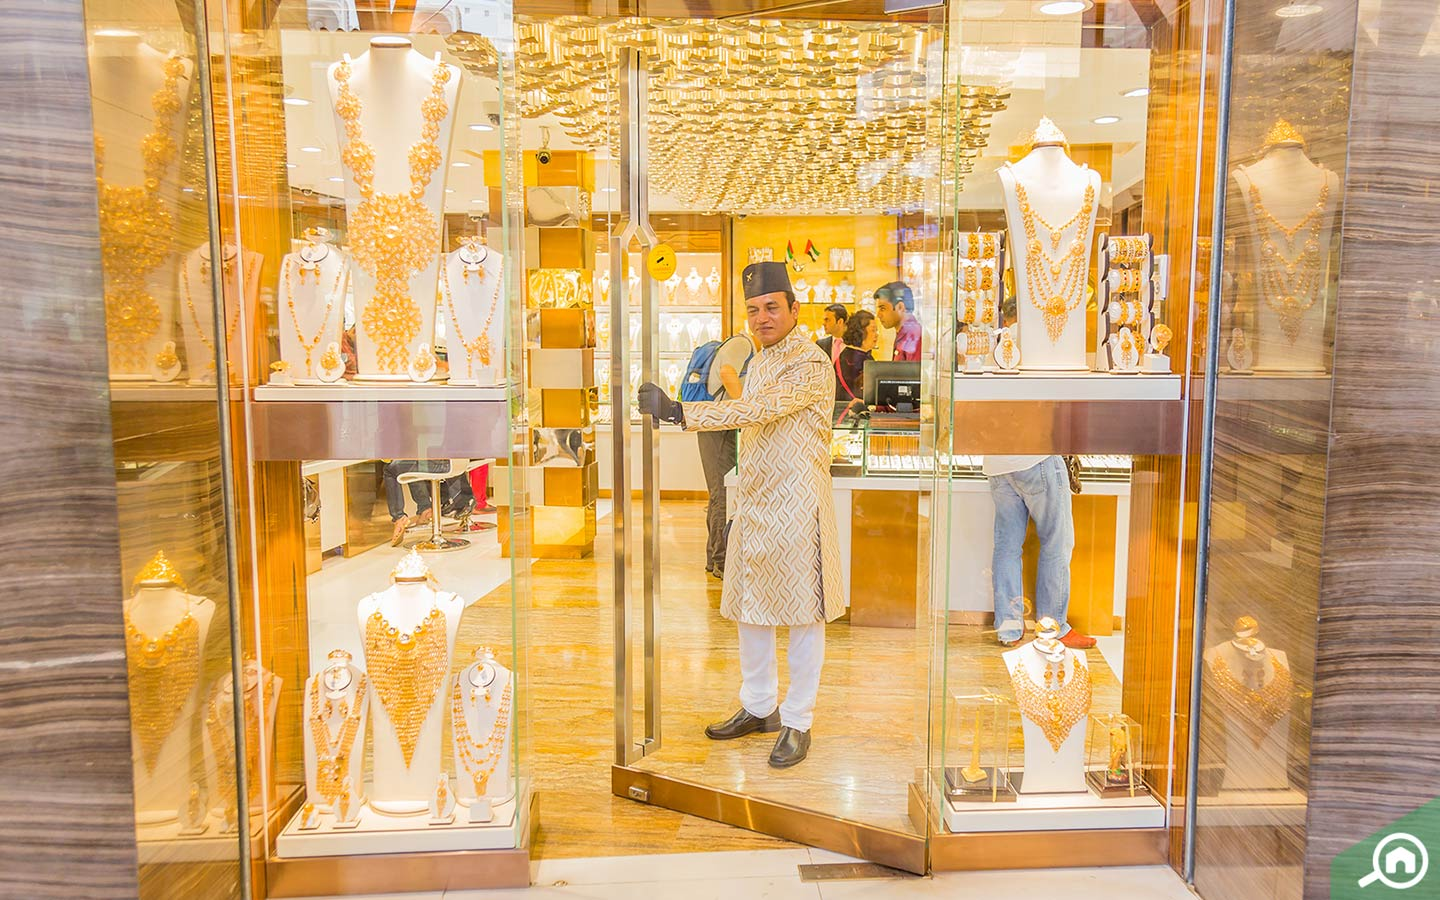 While living in Deira, you can buy a variety of gold, diamond and platinum pendants.